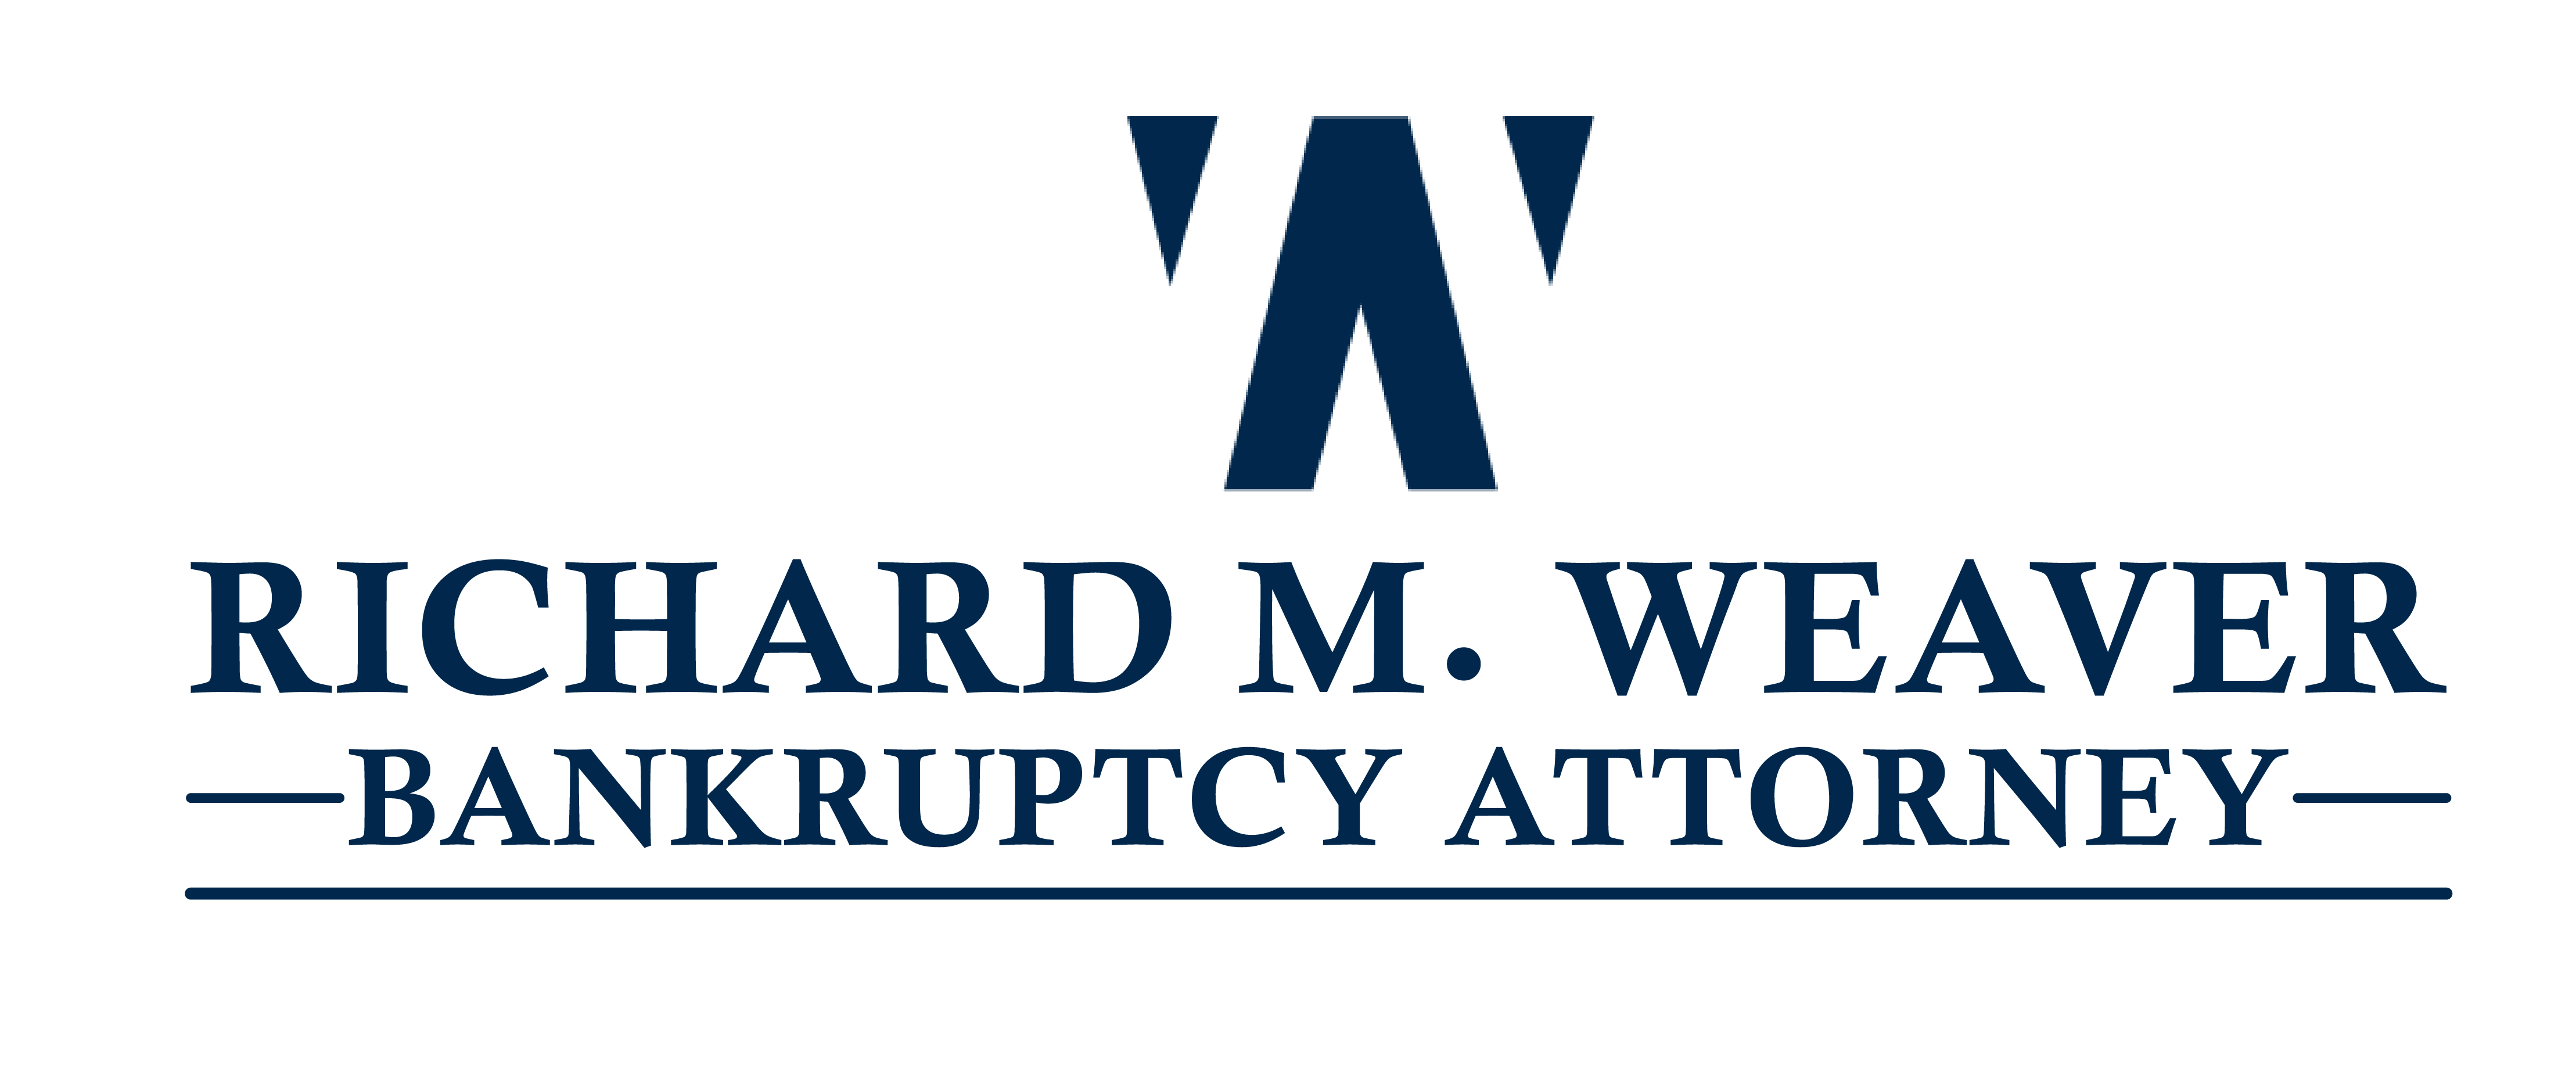 Richard M. Weaver Bankruptcy Attorney Is Rated Top Among Debt Relief And Foreclosure Prevention Law Firms